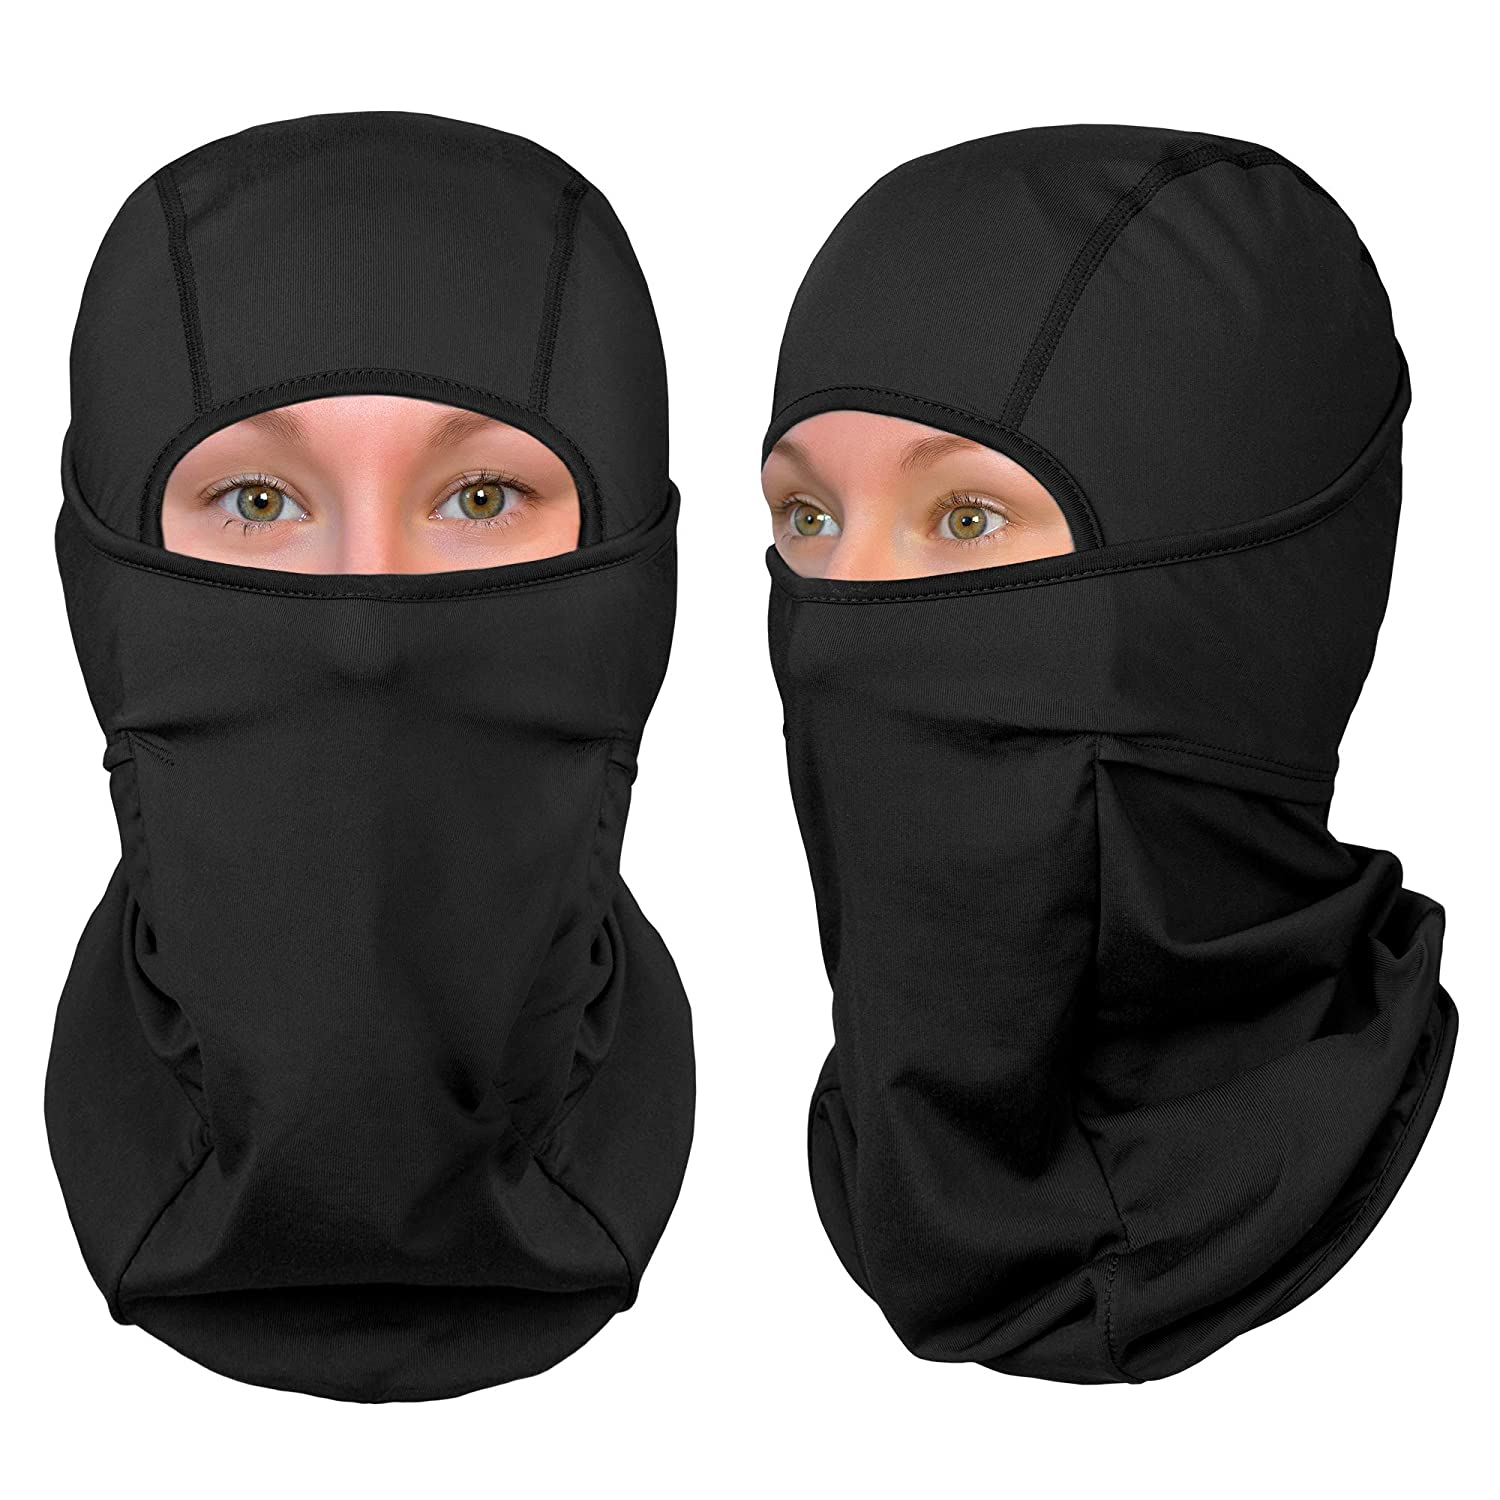 The Friendly Swede Balaclava Face Mask Neck Gaiter and Motorcycle Helmet Liner Standard//Nordic//Arctic 1-Pack or 2-Pack - Ski and Winter Sports Headwear